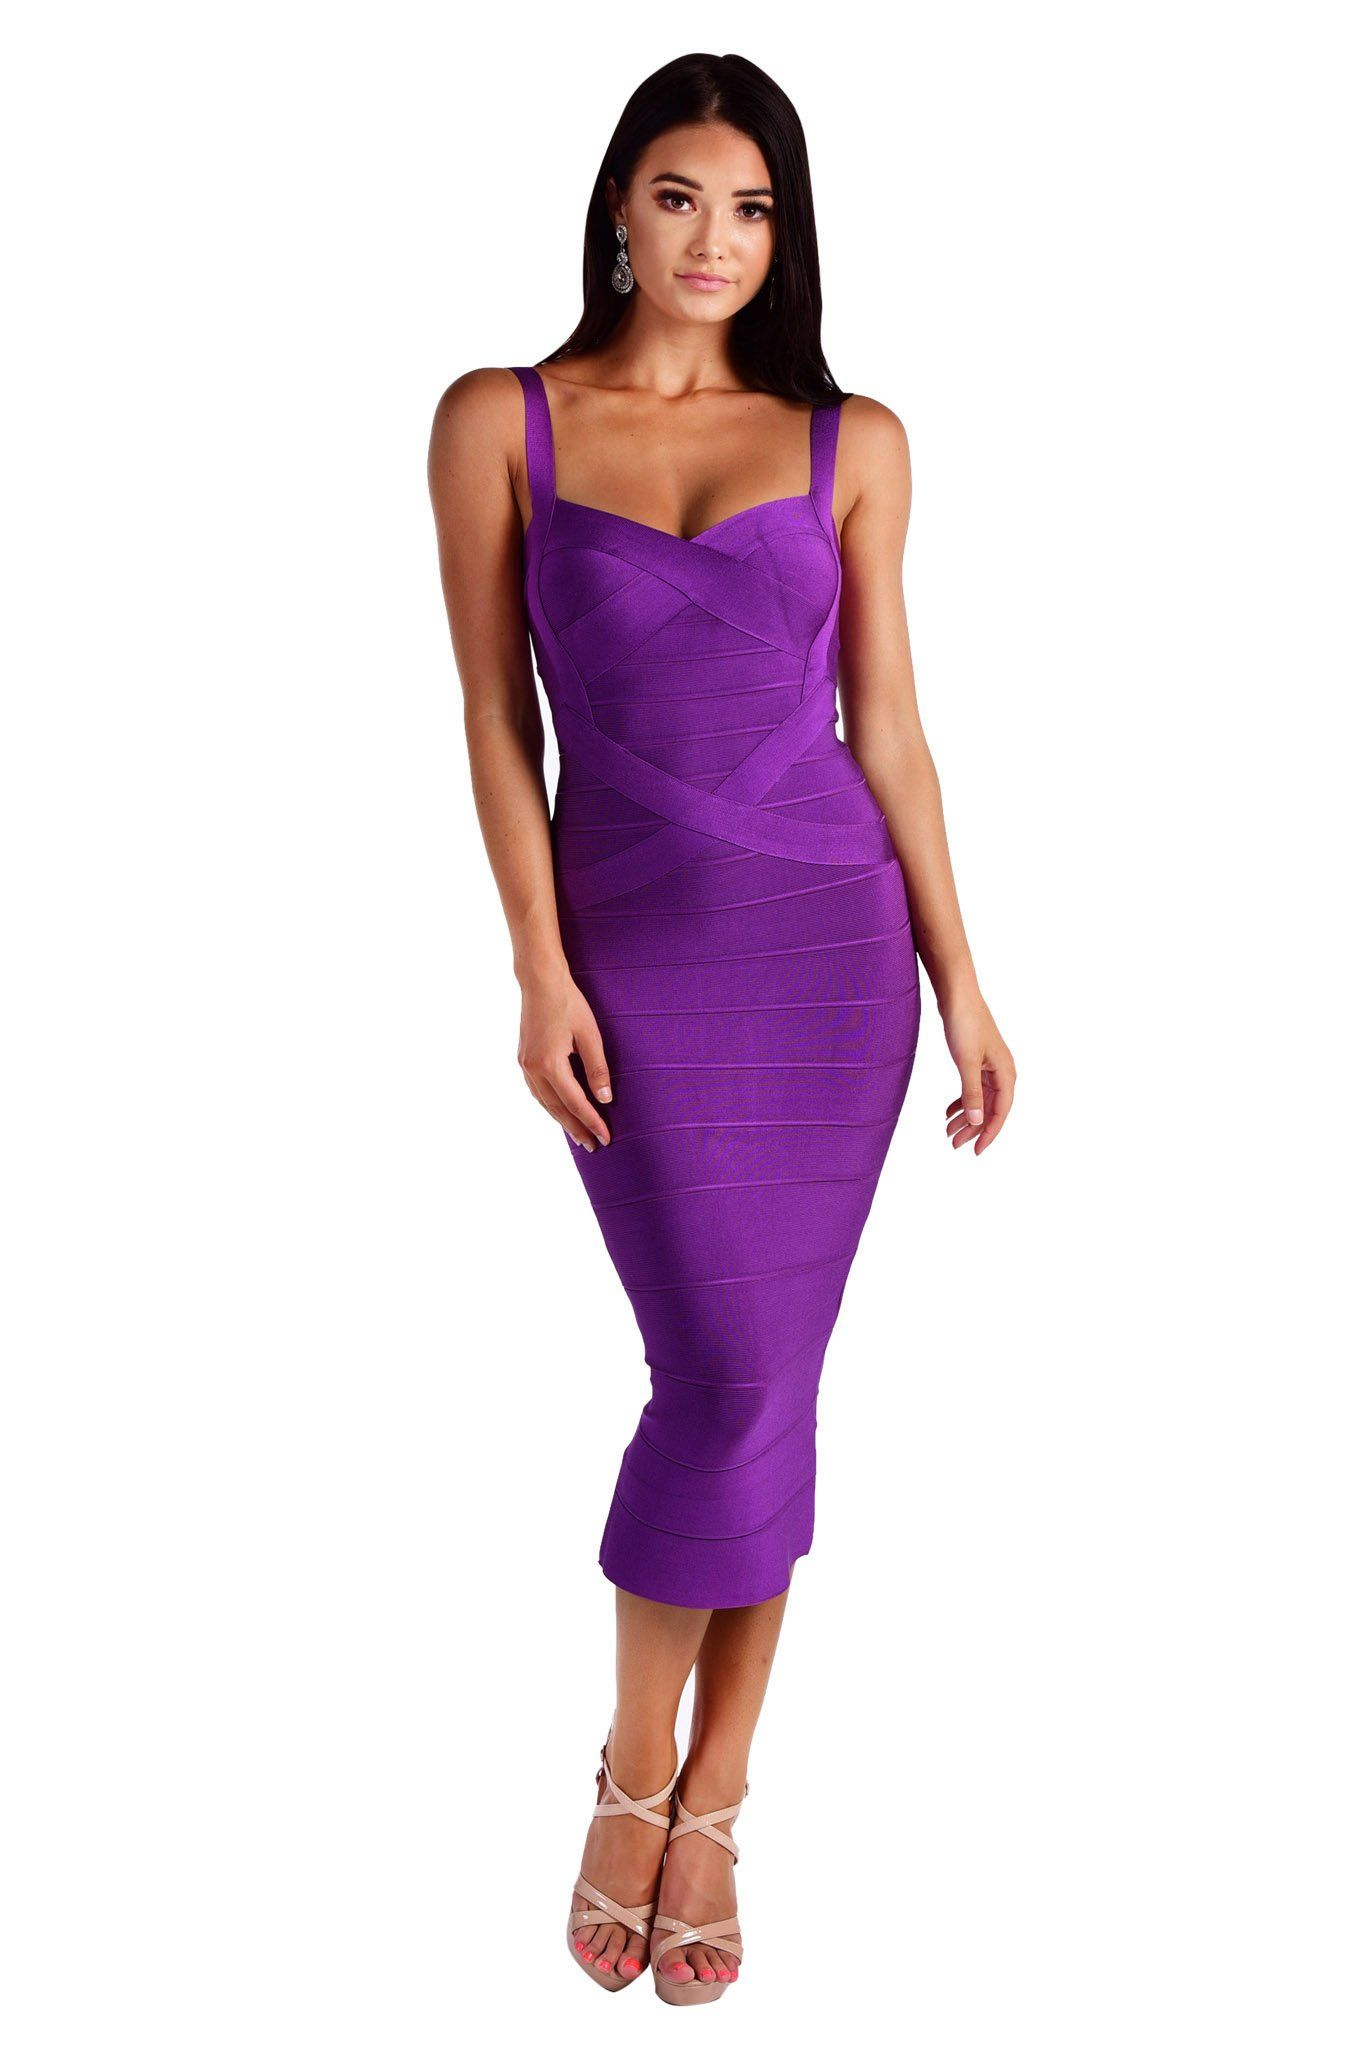 Purple colored mid-calf midi bandage dress with subtle sweetheart neckline, shoulder straps and cross bands detailing